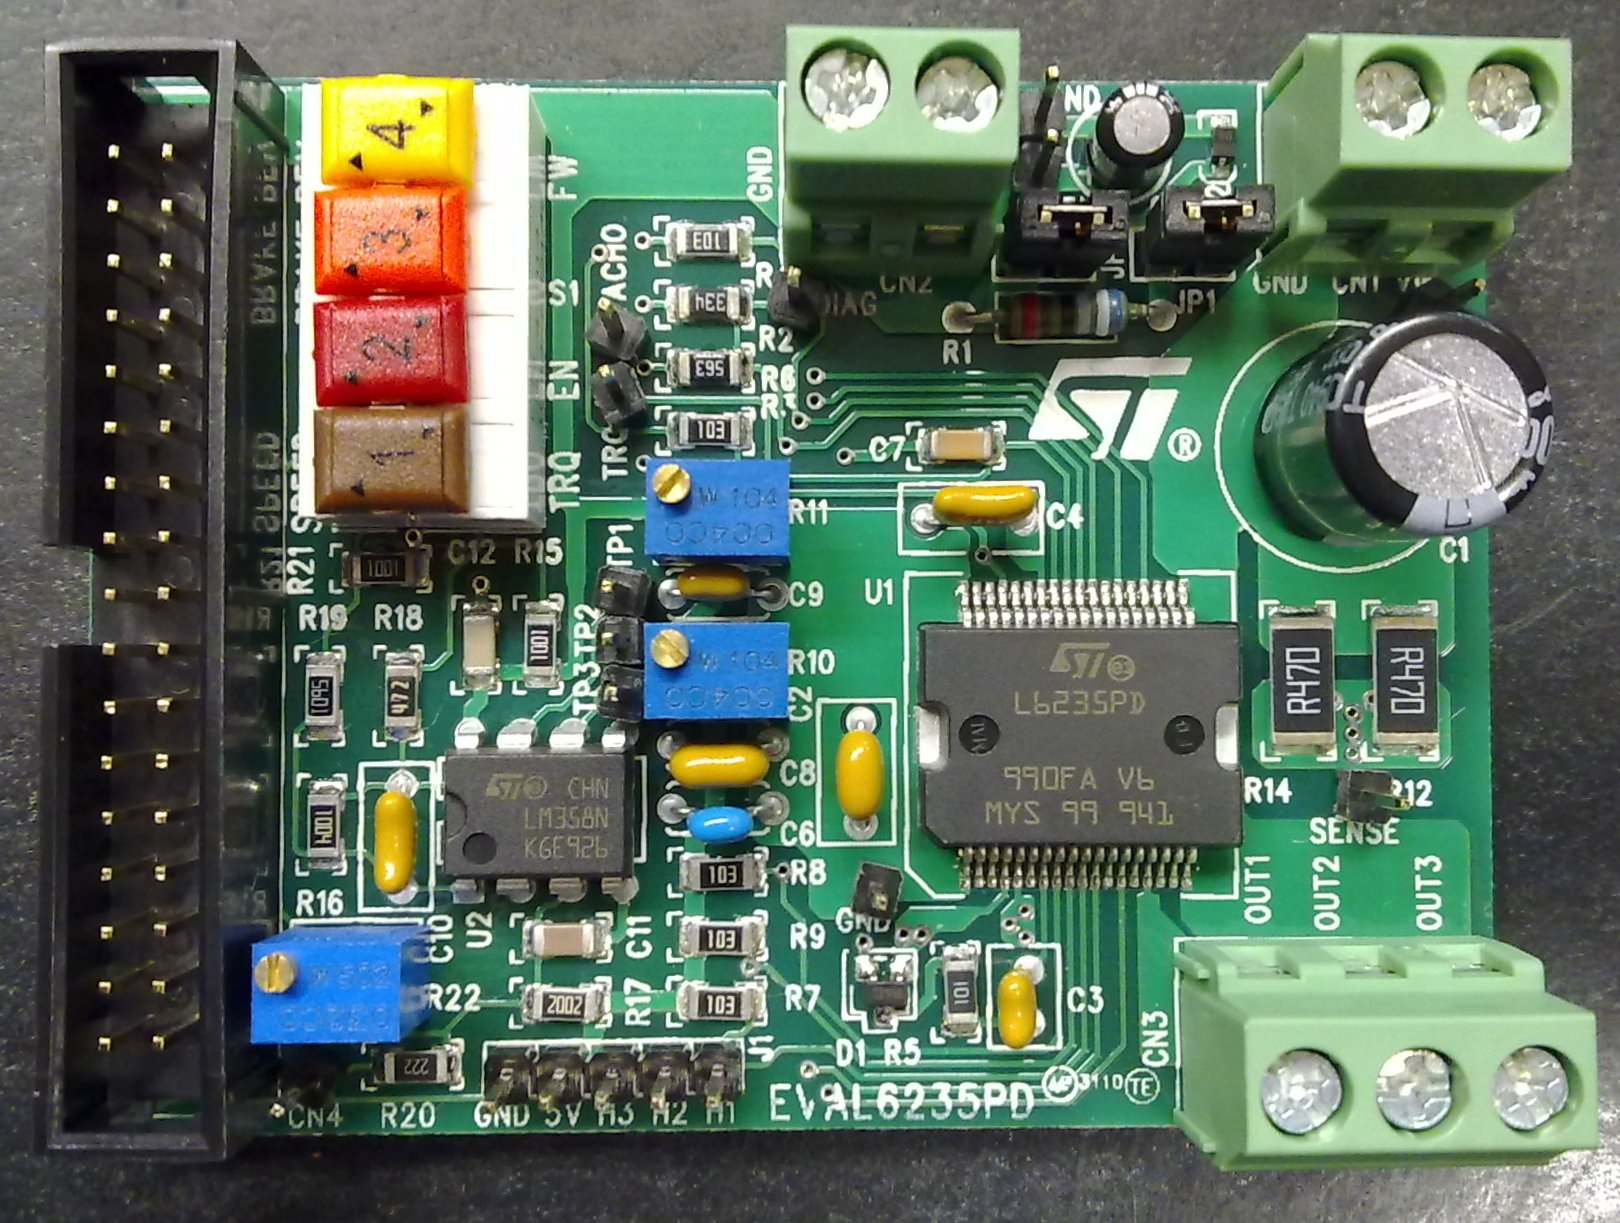 Eval6235pd L6235 Three Phase Brushless Dc Motor Driver